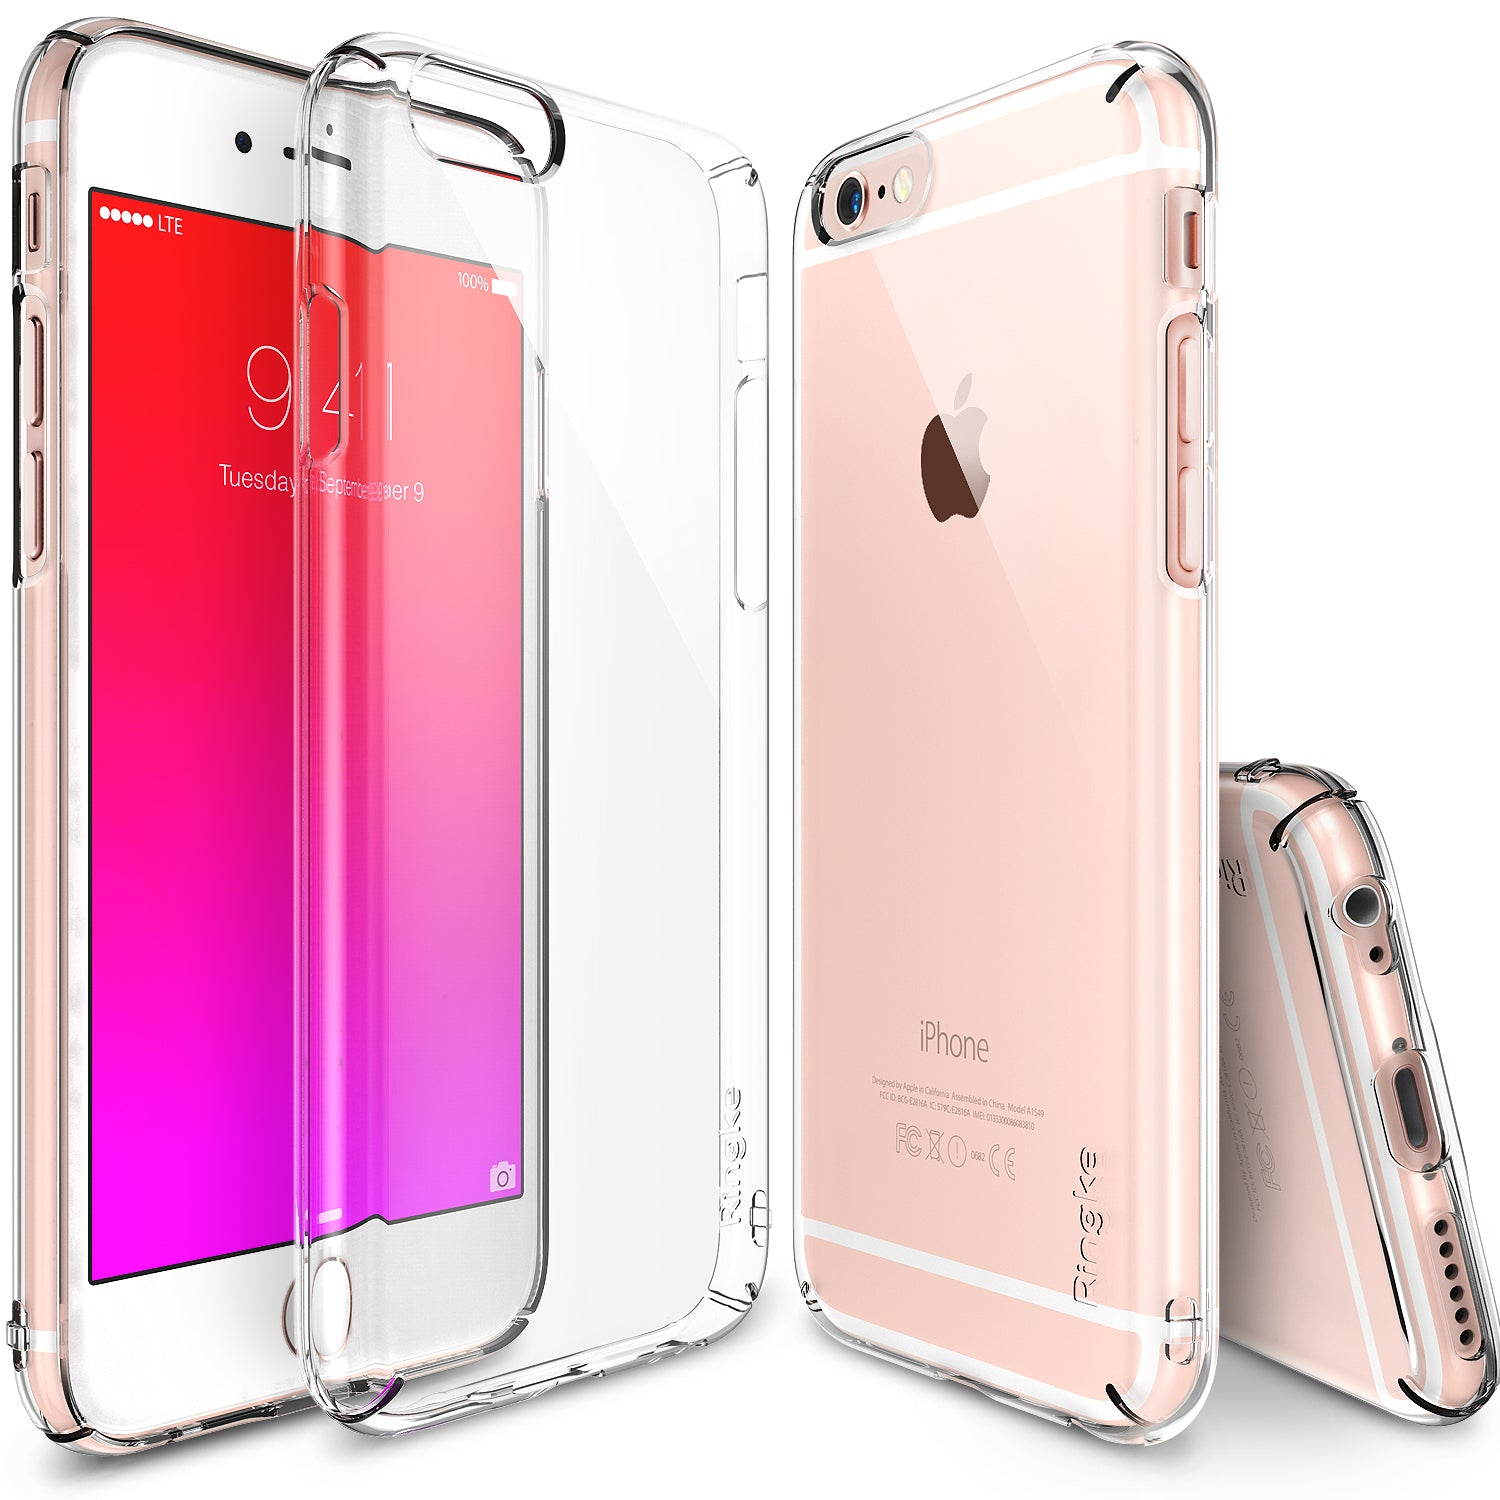 ringke slim lightweight hard pc thin case cover for iphone 6s plus main clear